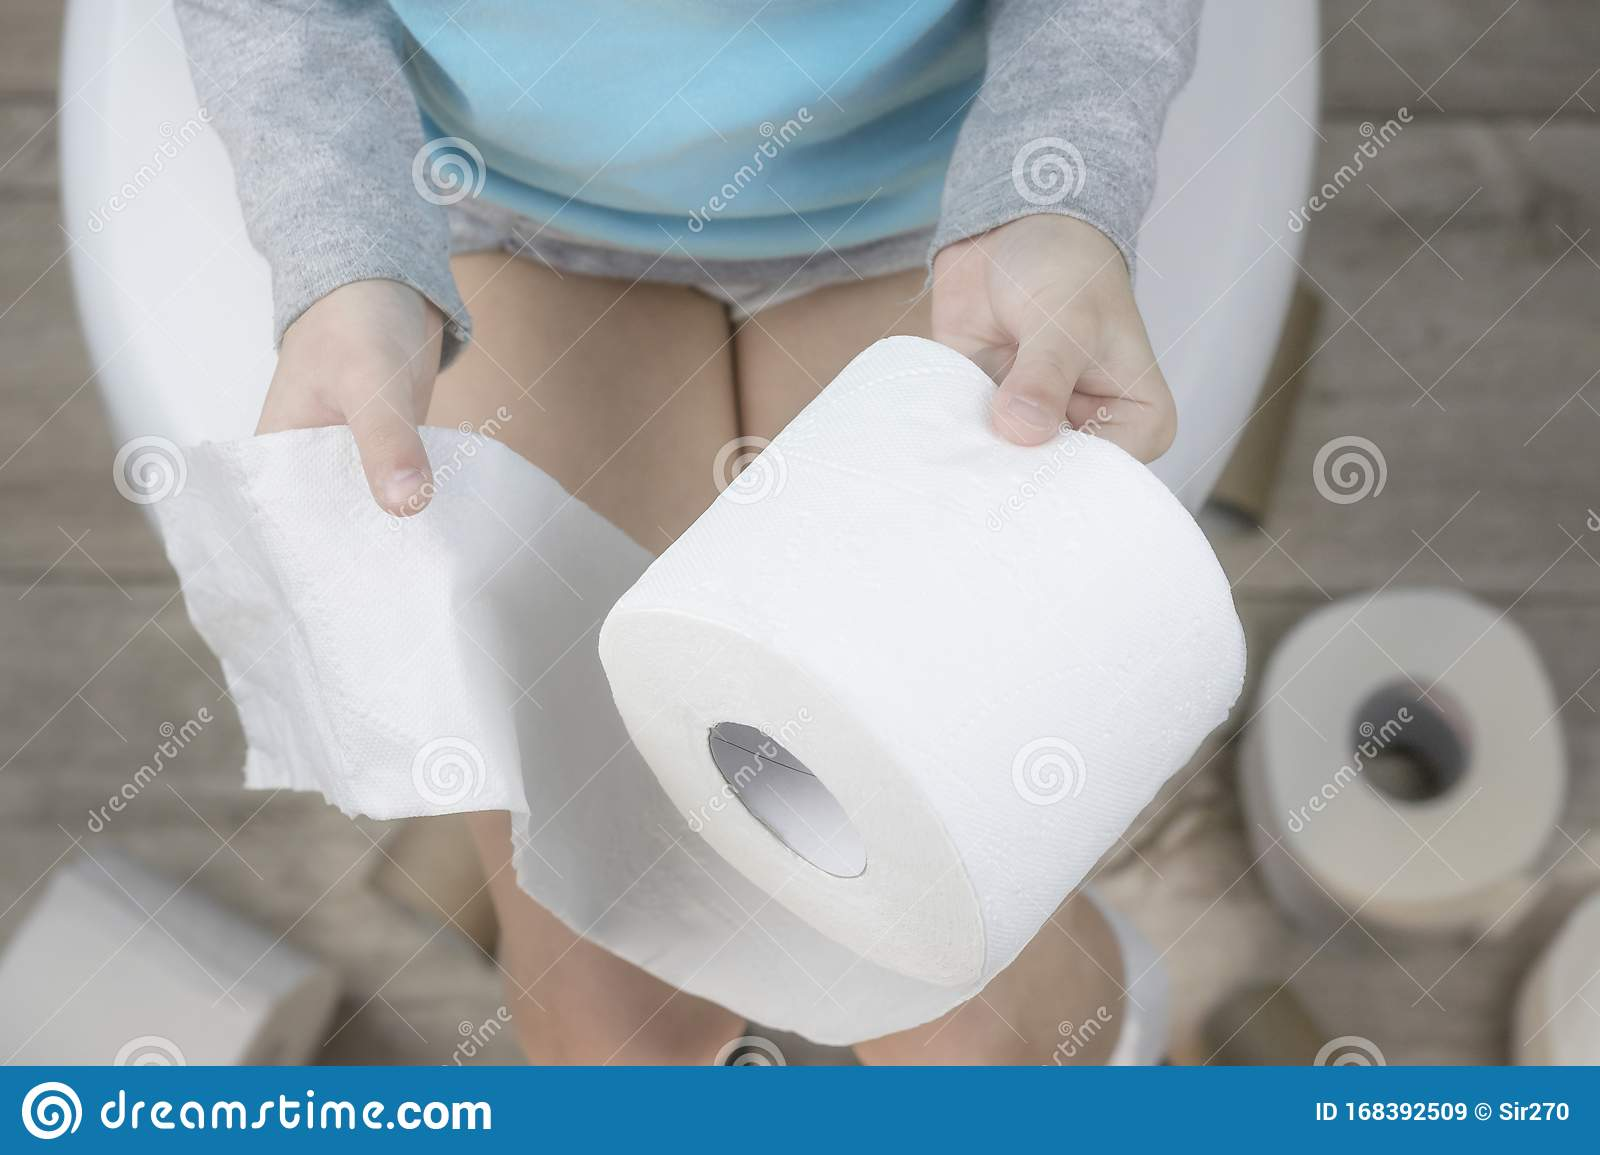 Child Sitting In Toilet High-Res Stock Photo - Getty Images